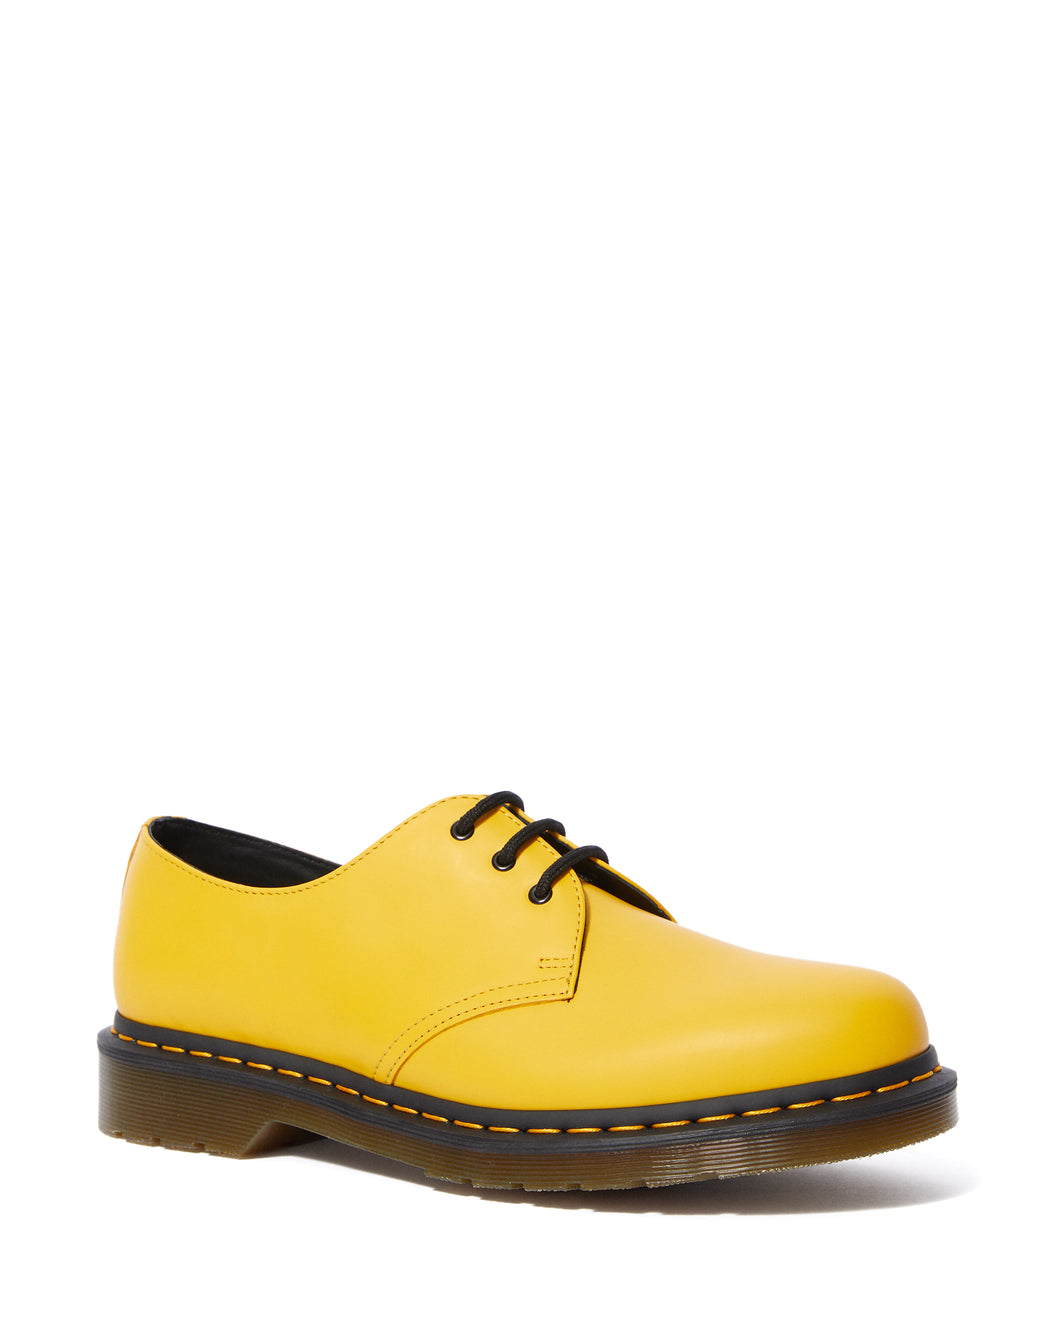 1461 SMOOTH (yellow)